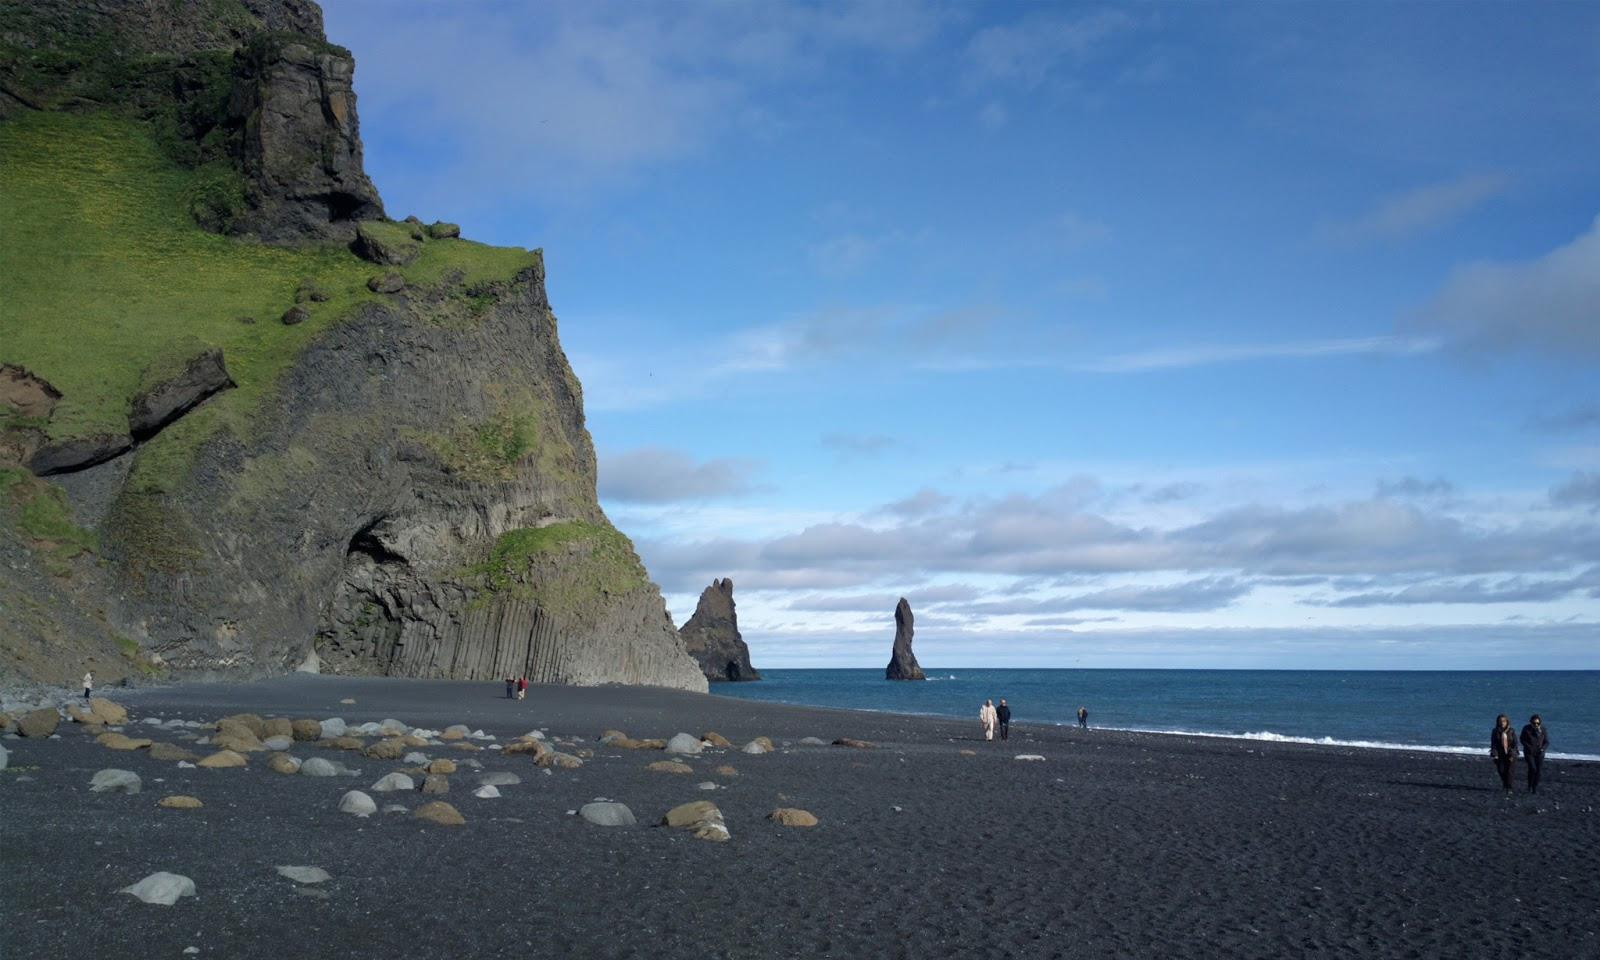 iceland hd wallpapers - photo #6